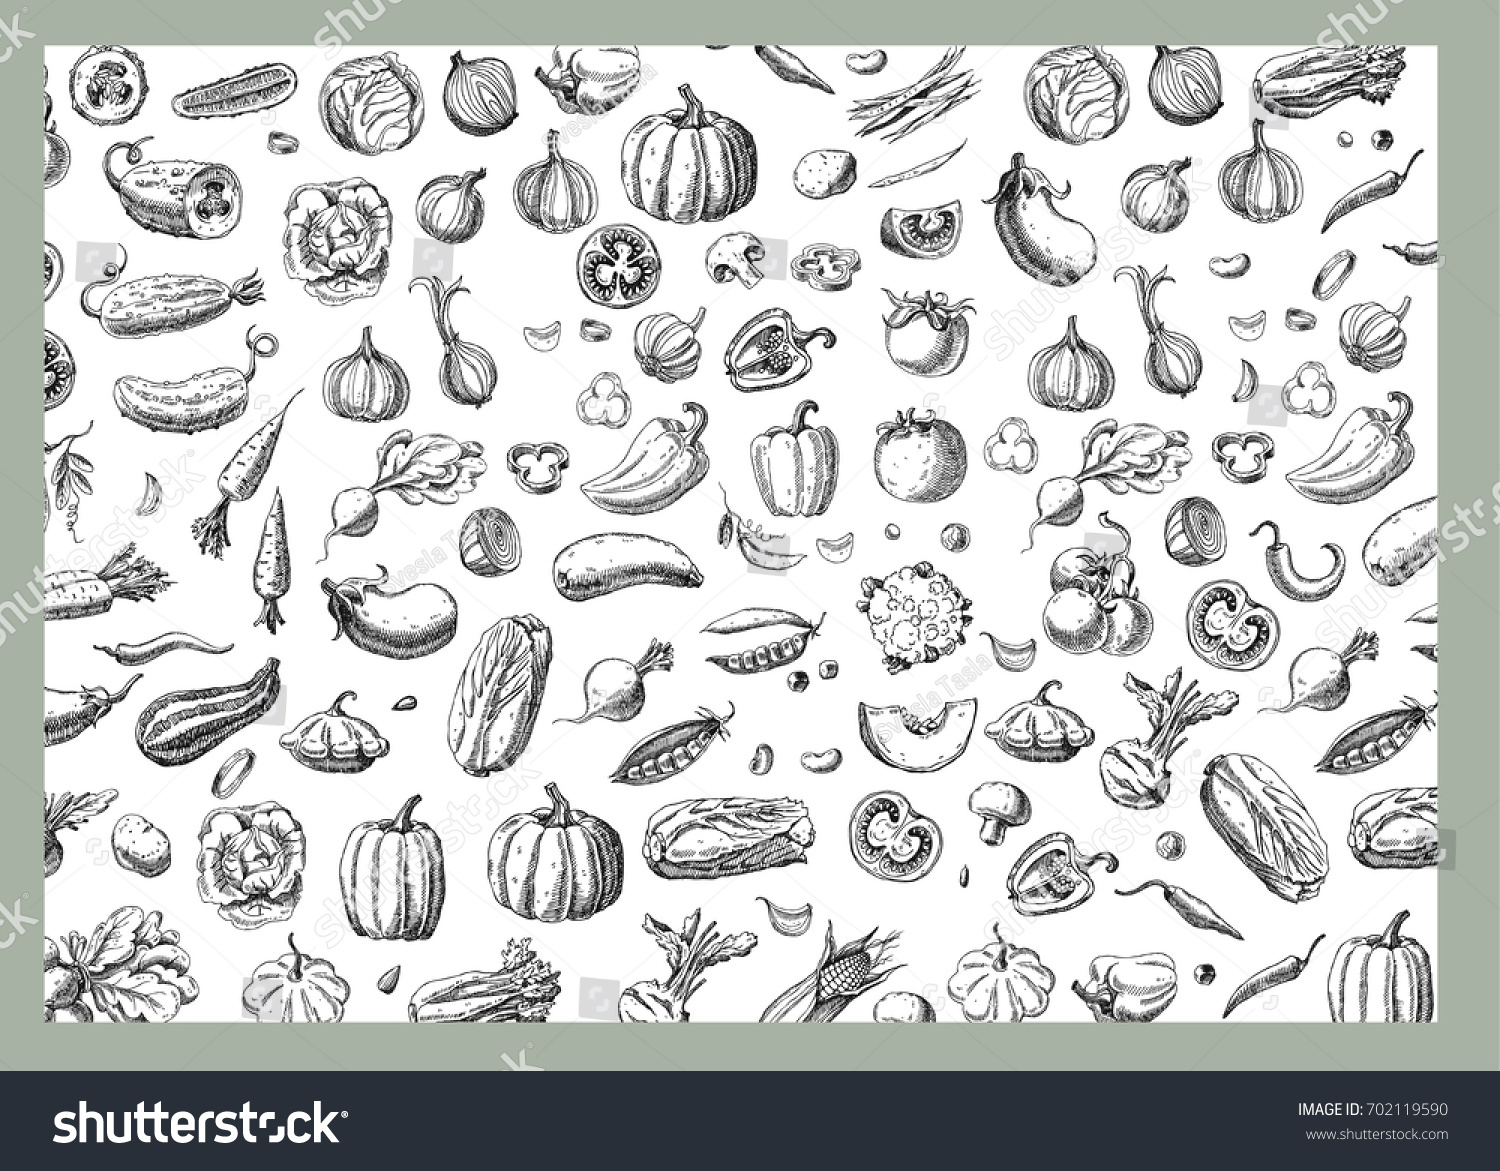 Background with Vegetables.Templates for label design with hand drawn linear vegetables. Can be used for vegan products, brochures, banner, restaurant menu, farmers market and organic food store #702119590